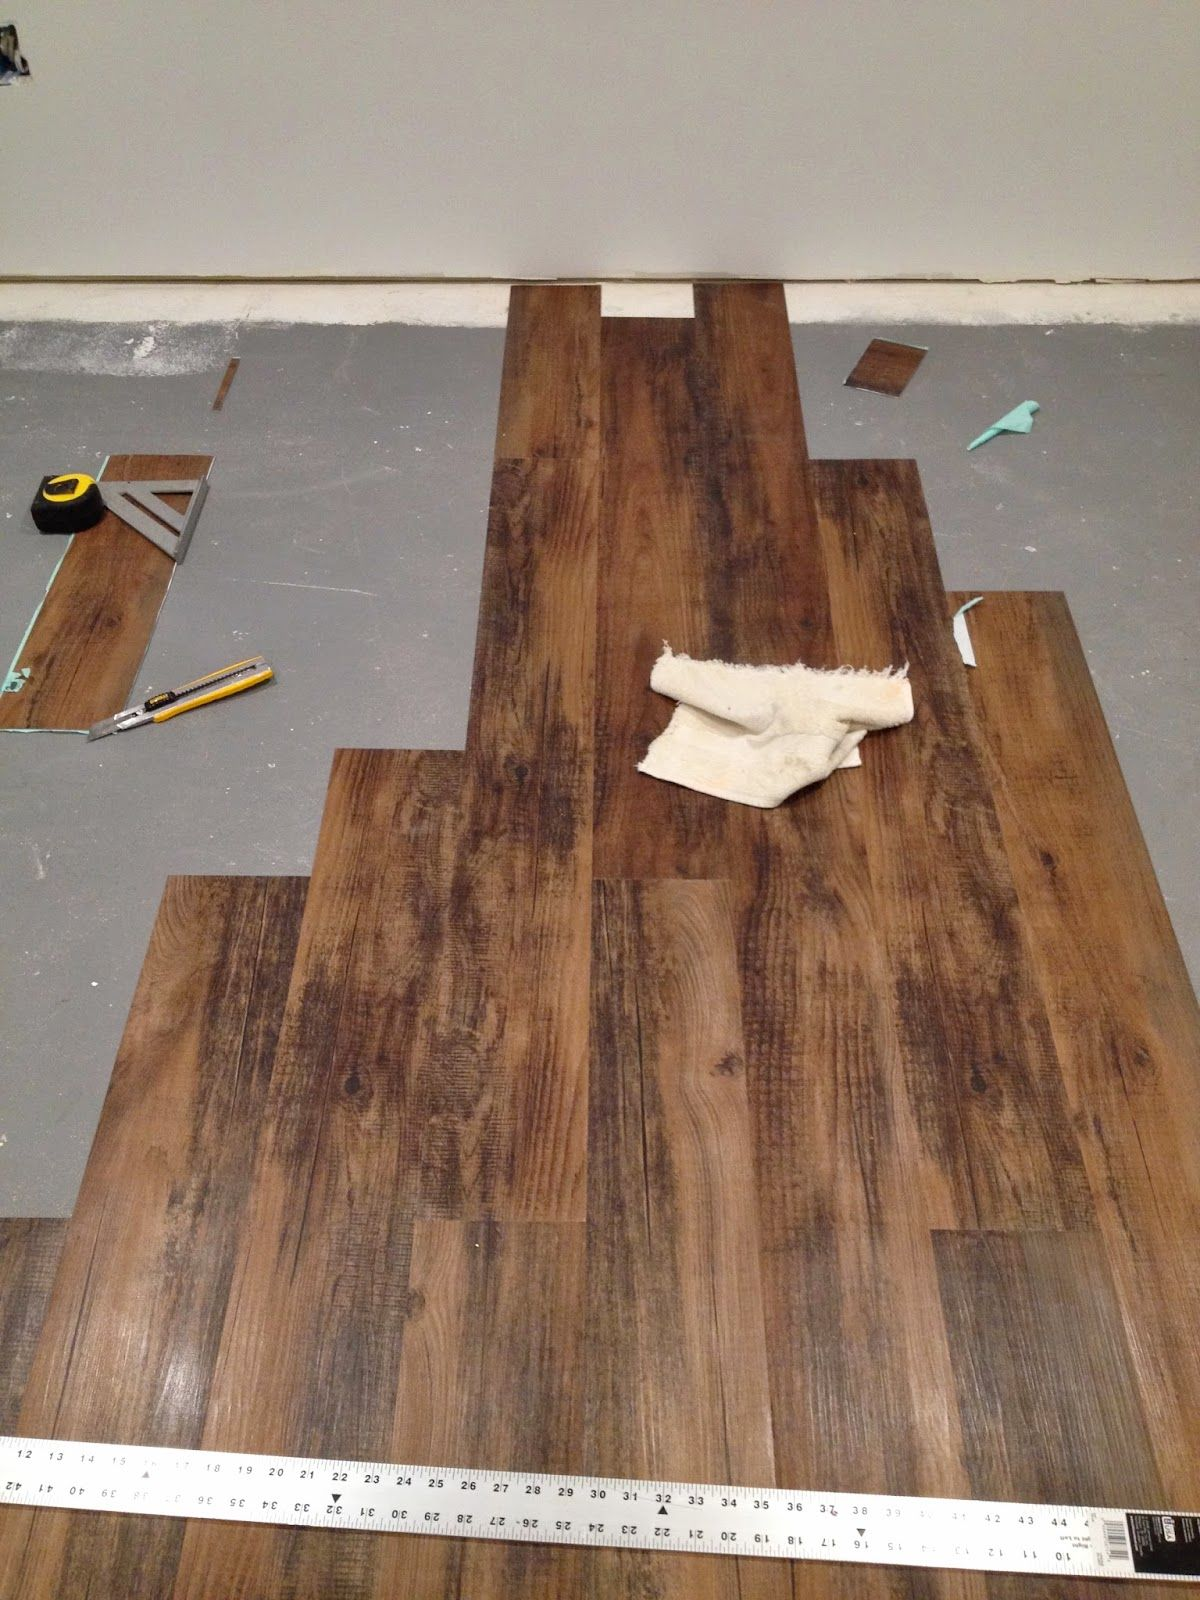 Peel And Stick Laminate Flooring peel stick vinyl plank floor tips youtube Installing Peel And Stick Laminate Floors In A Basement Remodel By Cozy Cape Cottage